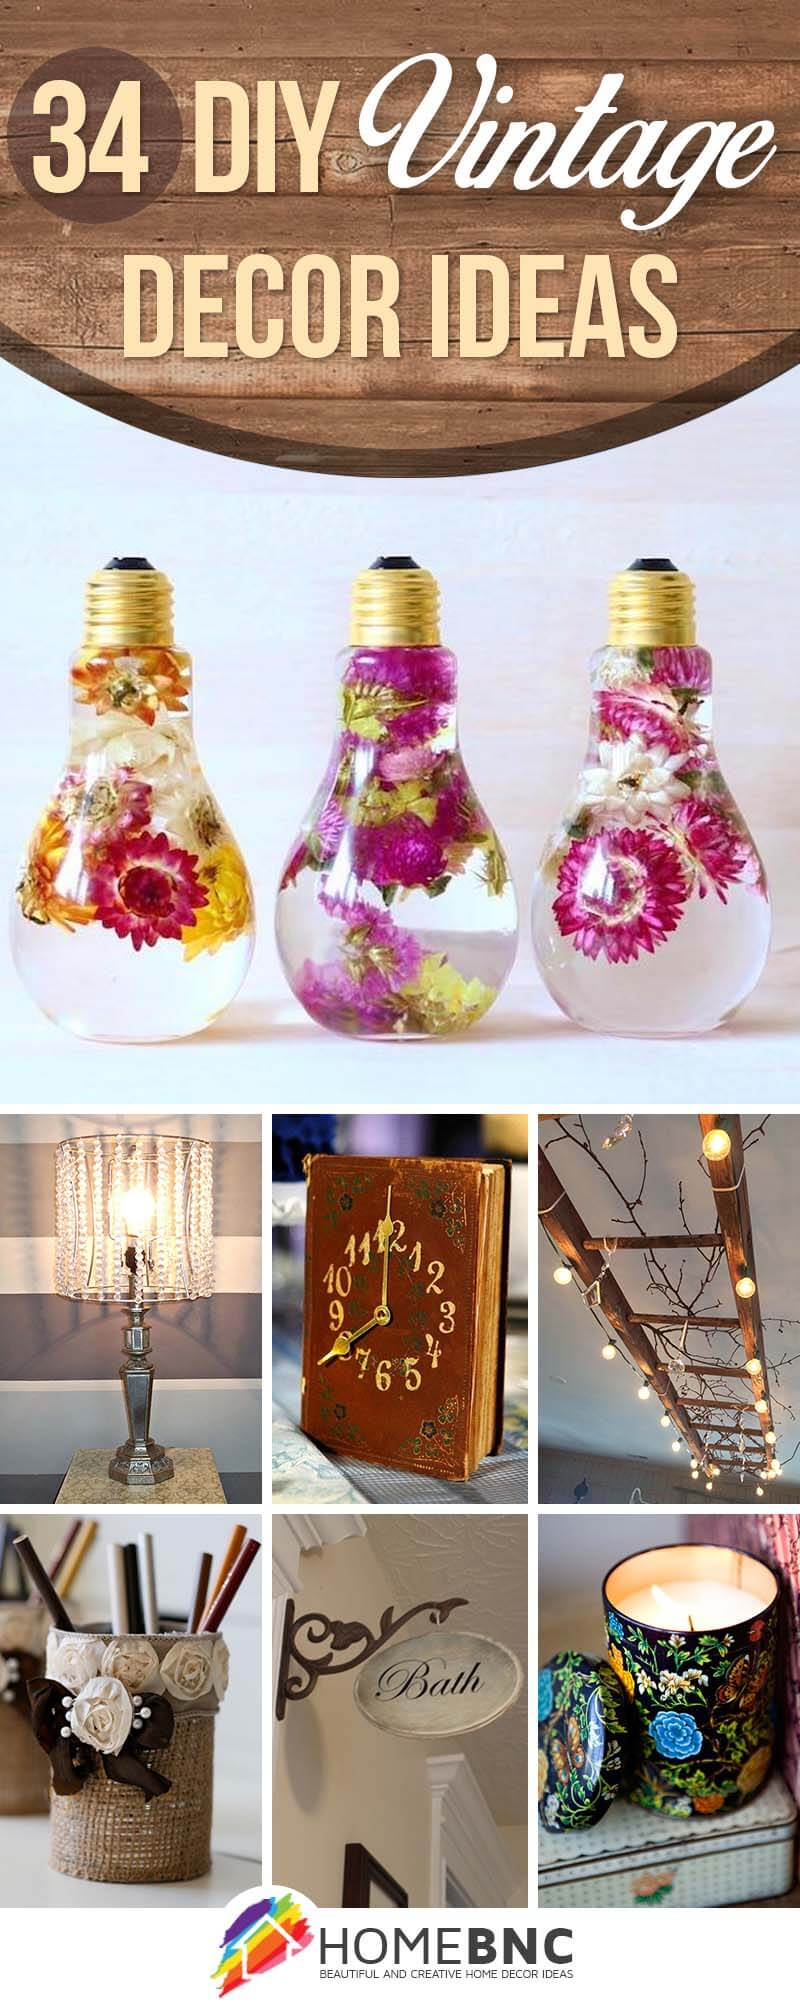 34 Best DIY Vintage Decor Ideas and Projects for 2019